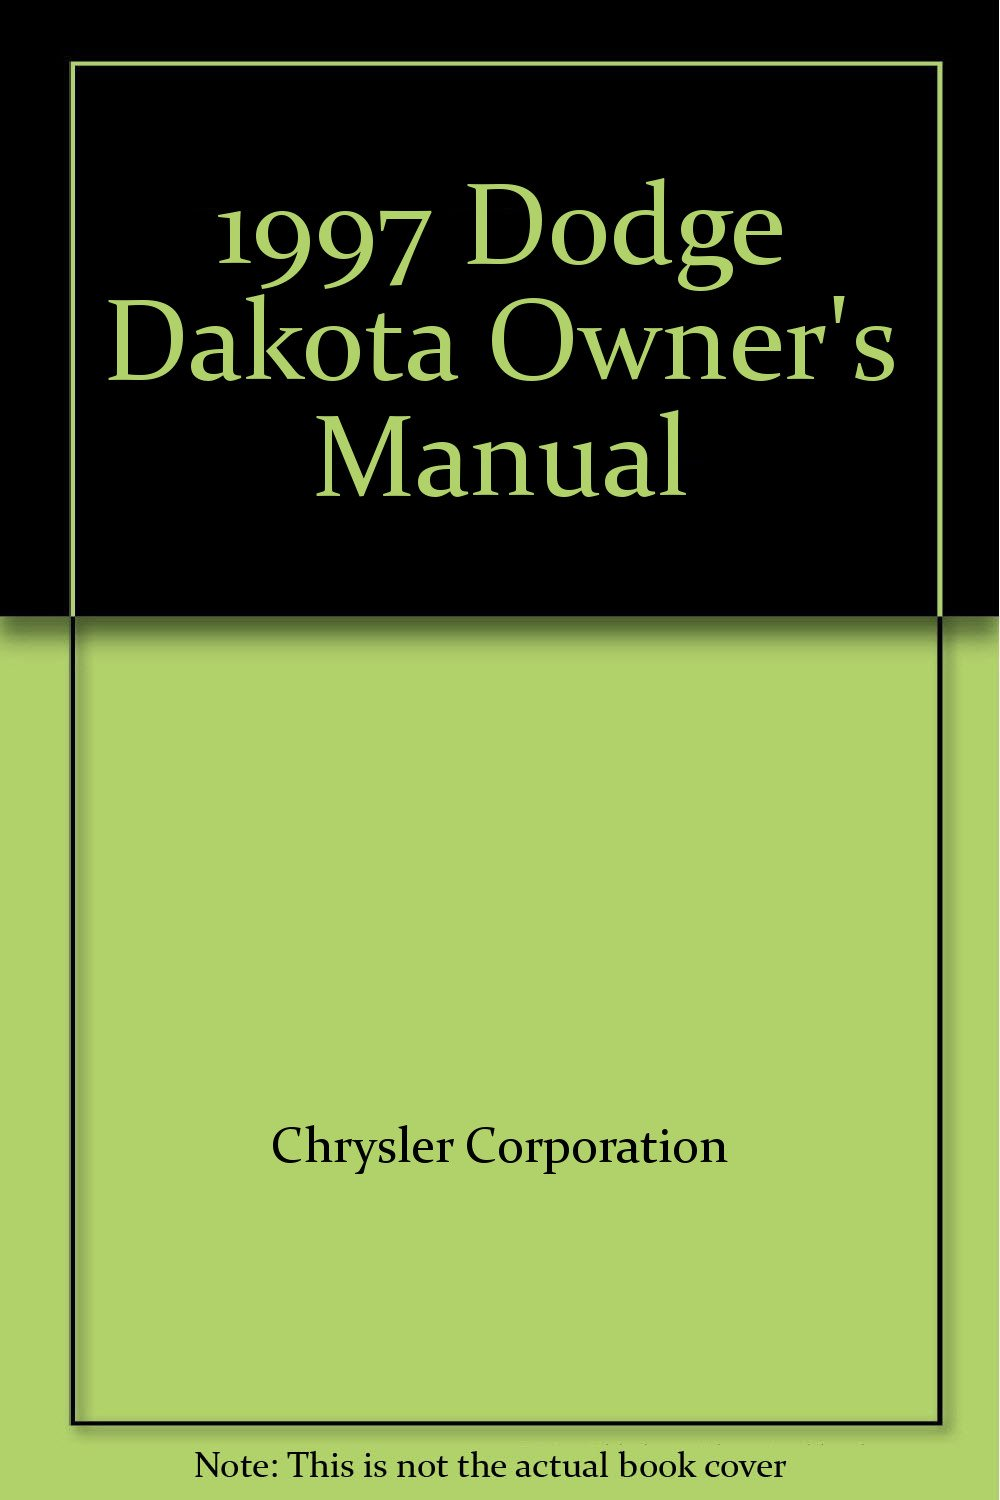 1997 Dodge Dakota Owner's Manual: Chrysler Corporation: Amazon.com: Books